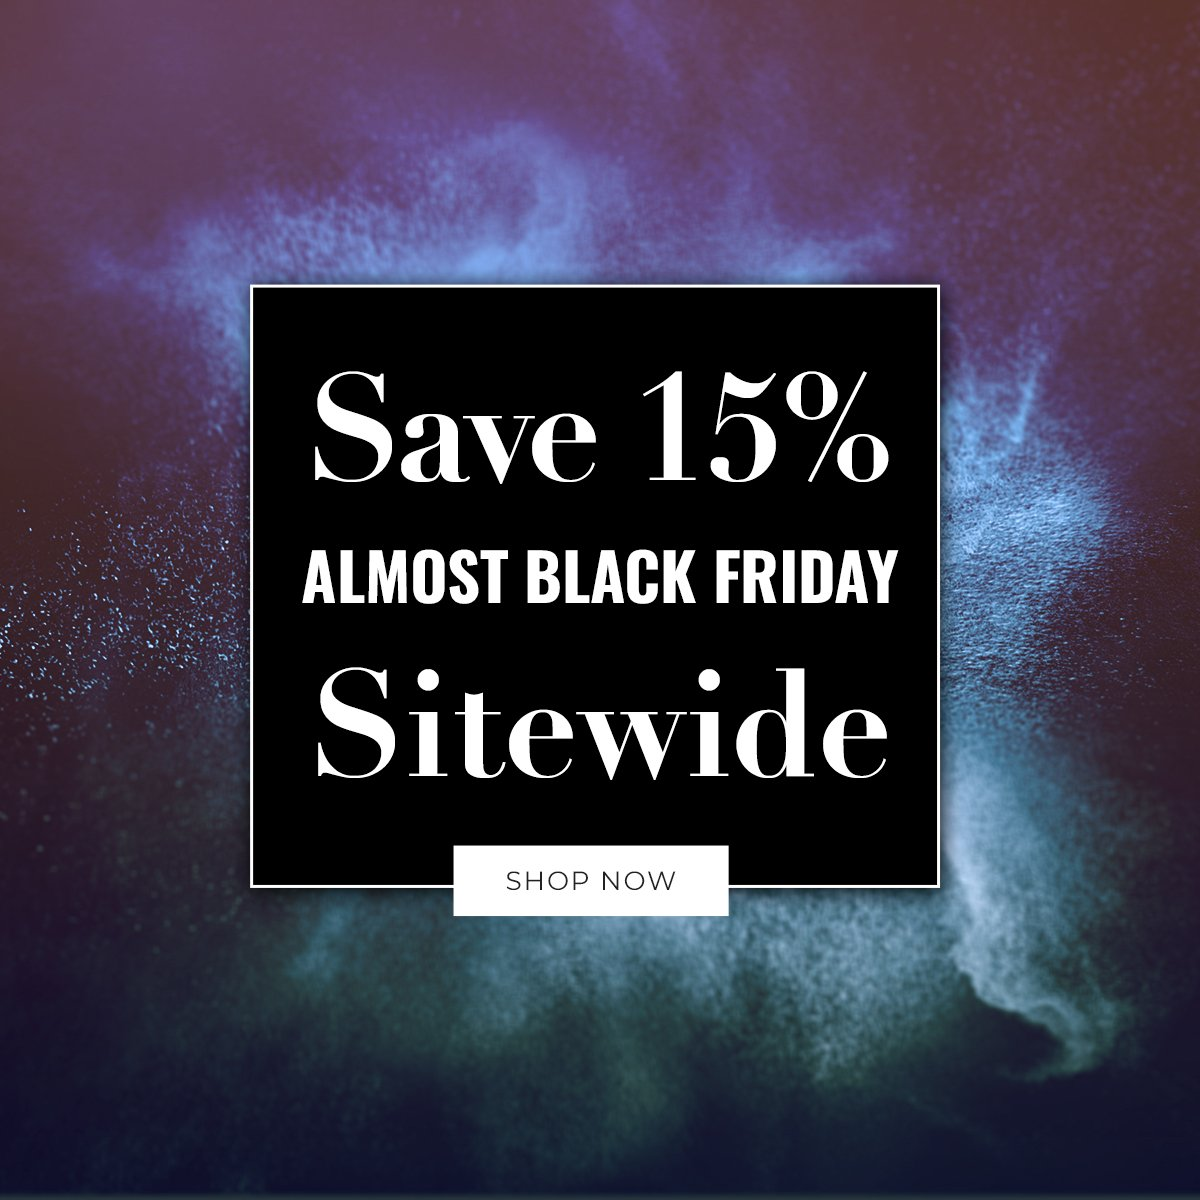 Save 15% in the entire Evanescence merch store 11/16-11/18. https://t.co/q4zVT5ejY6 https://t.co/0mi2NBI0lH